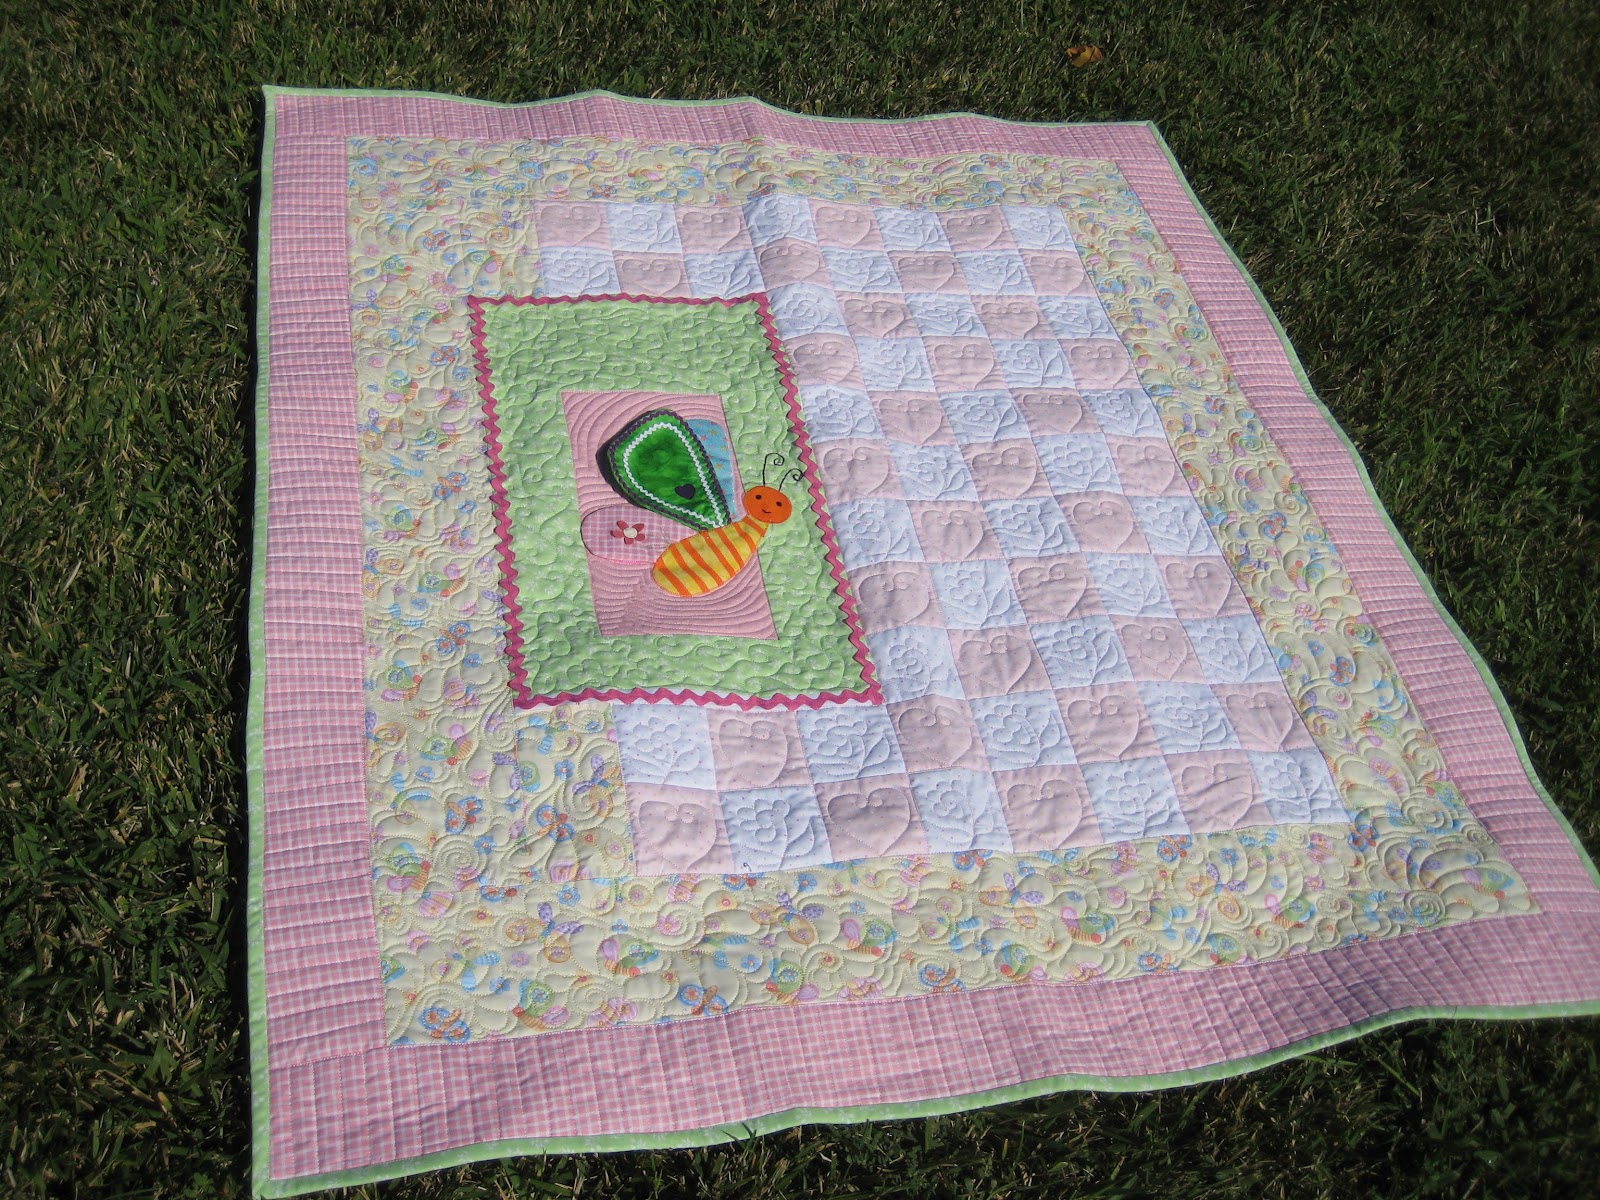 Threads on the floor baby holly 39 s quilt for Floor quilt for babies